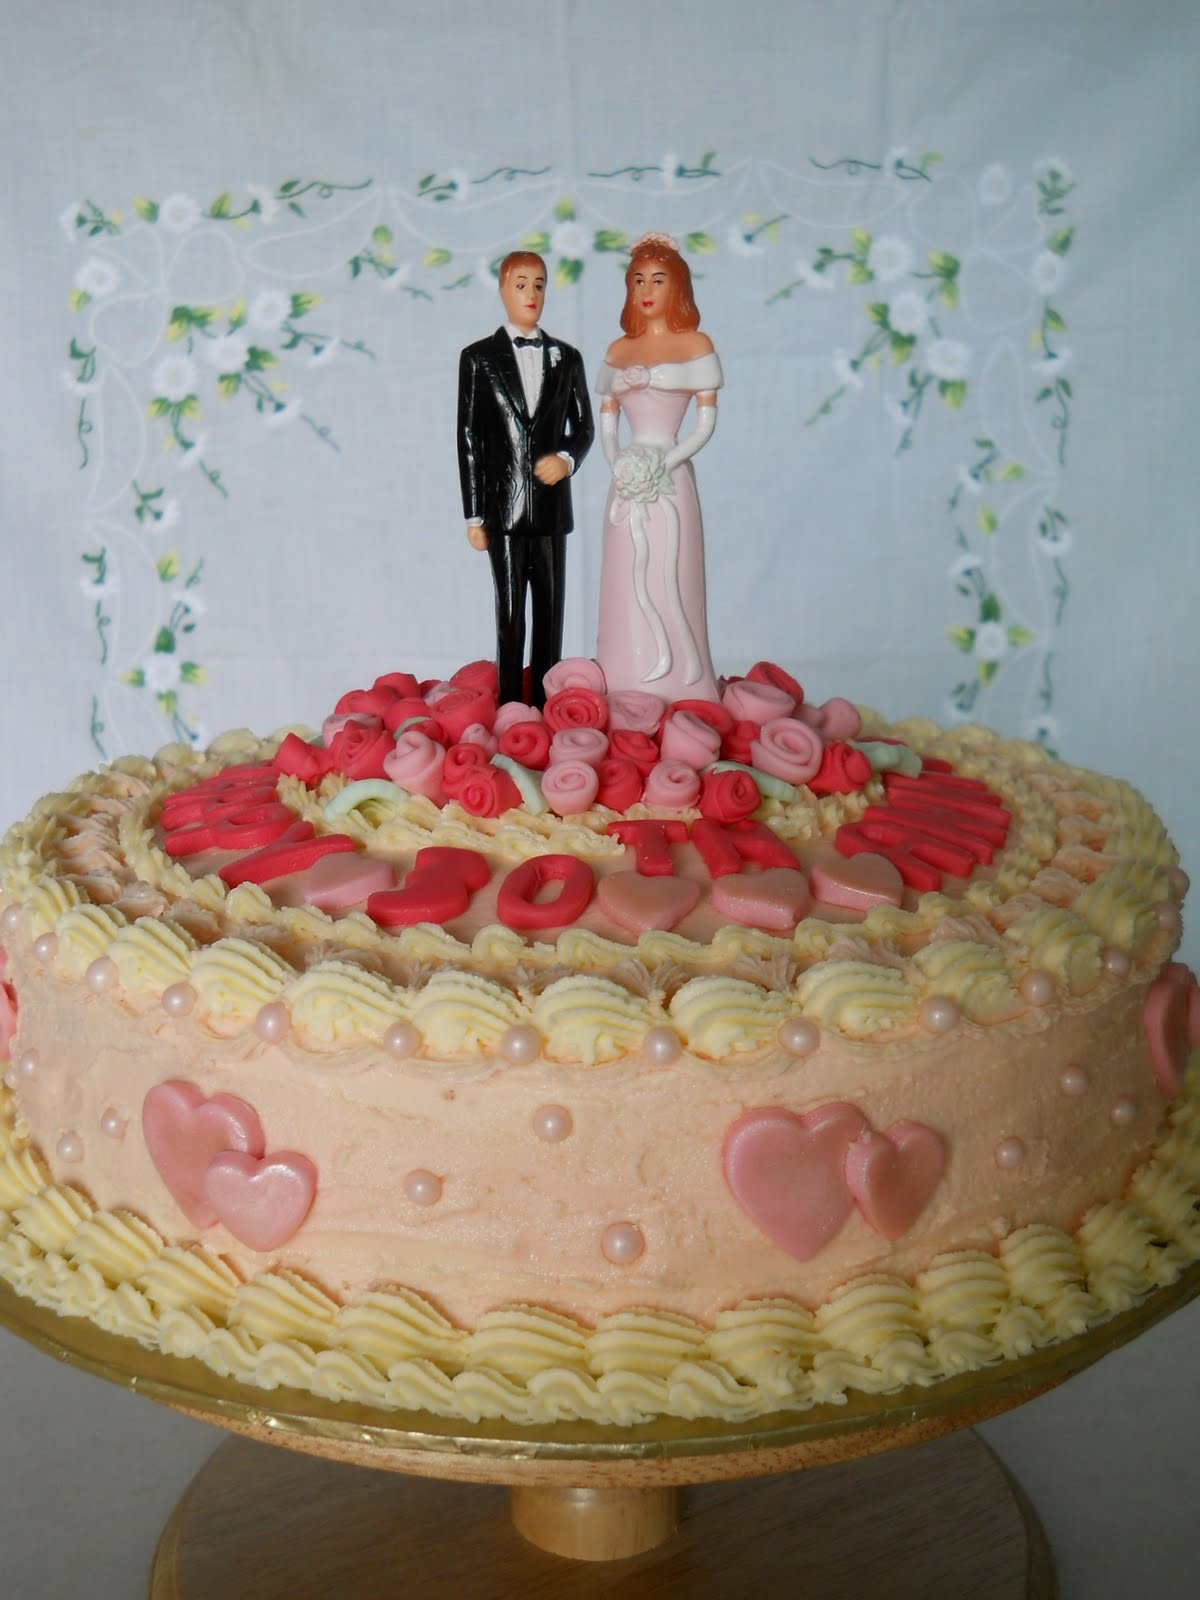 Best Anniversary Cake Images : THE BEST CAKES IN TOWN: WEDDING ANNIVERSARY CAKE